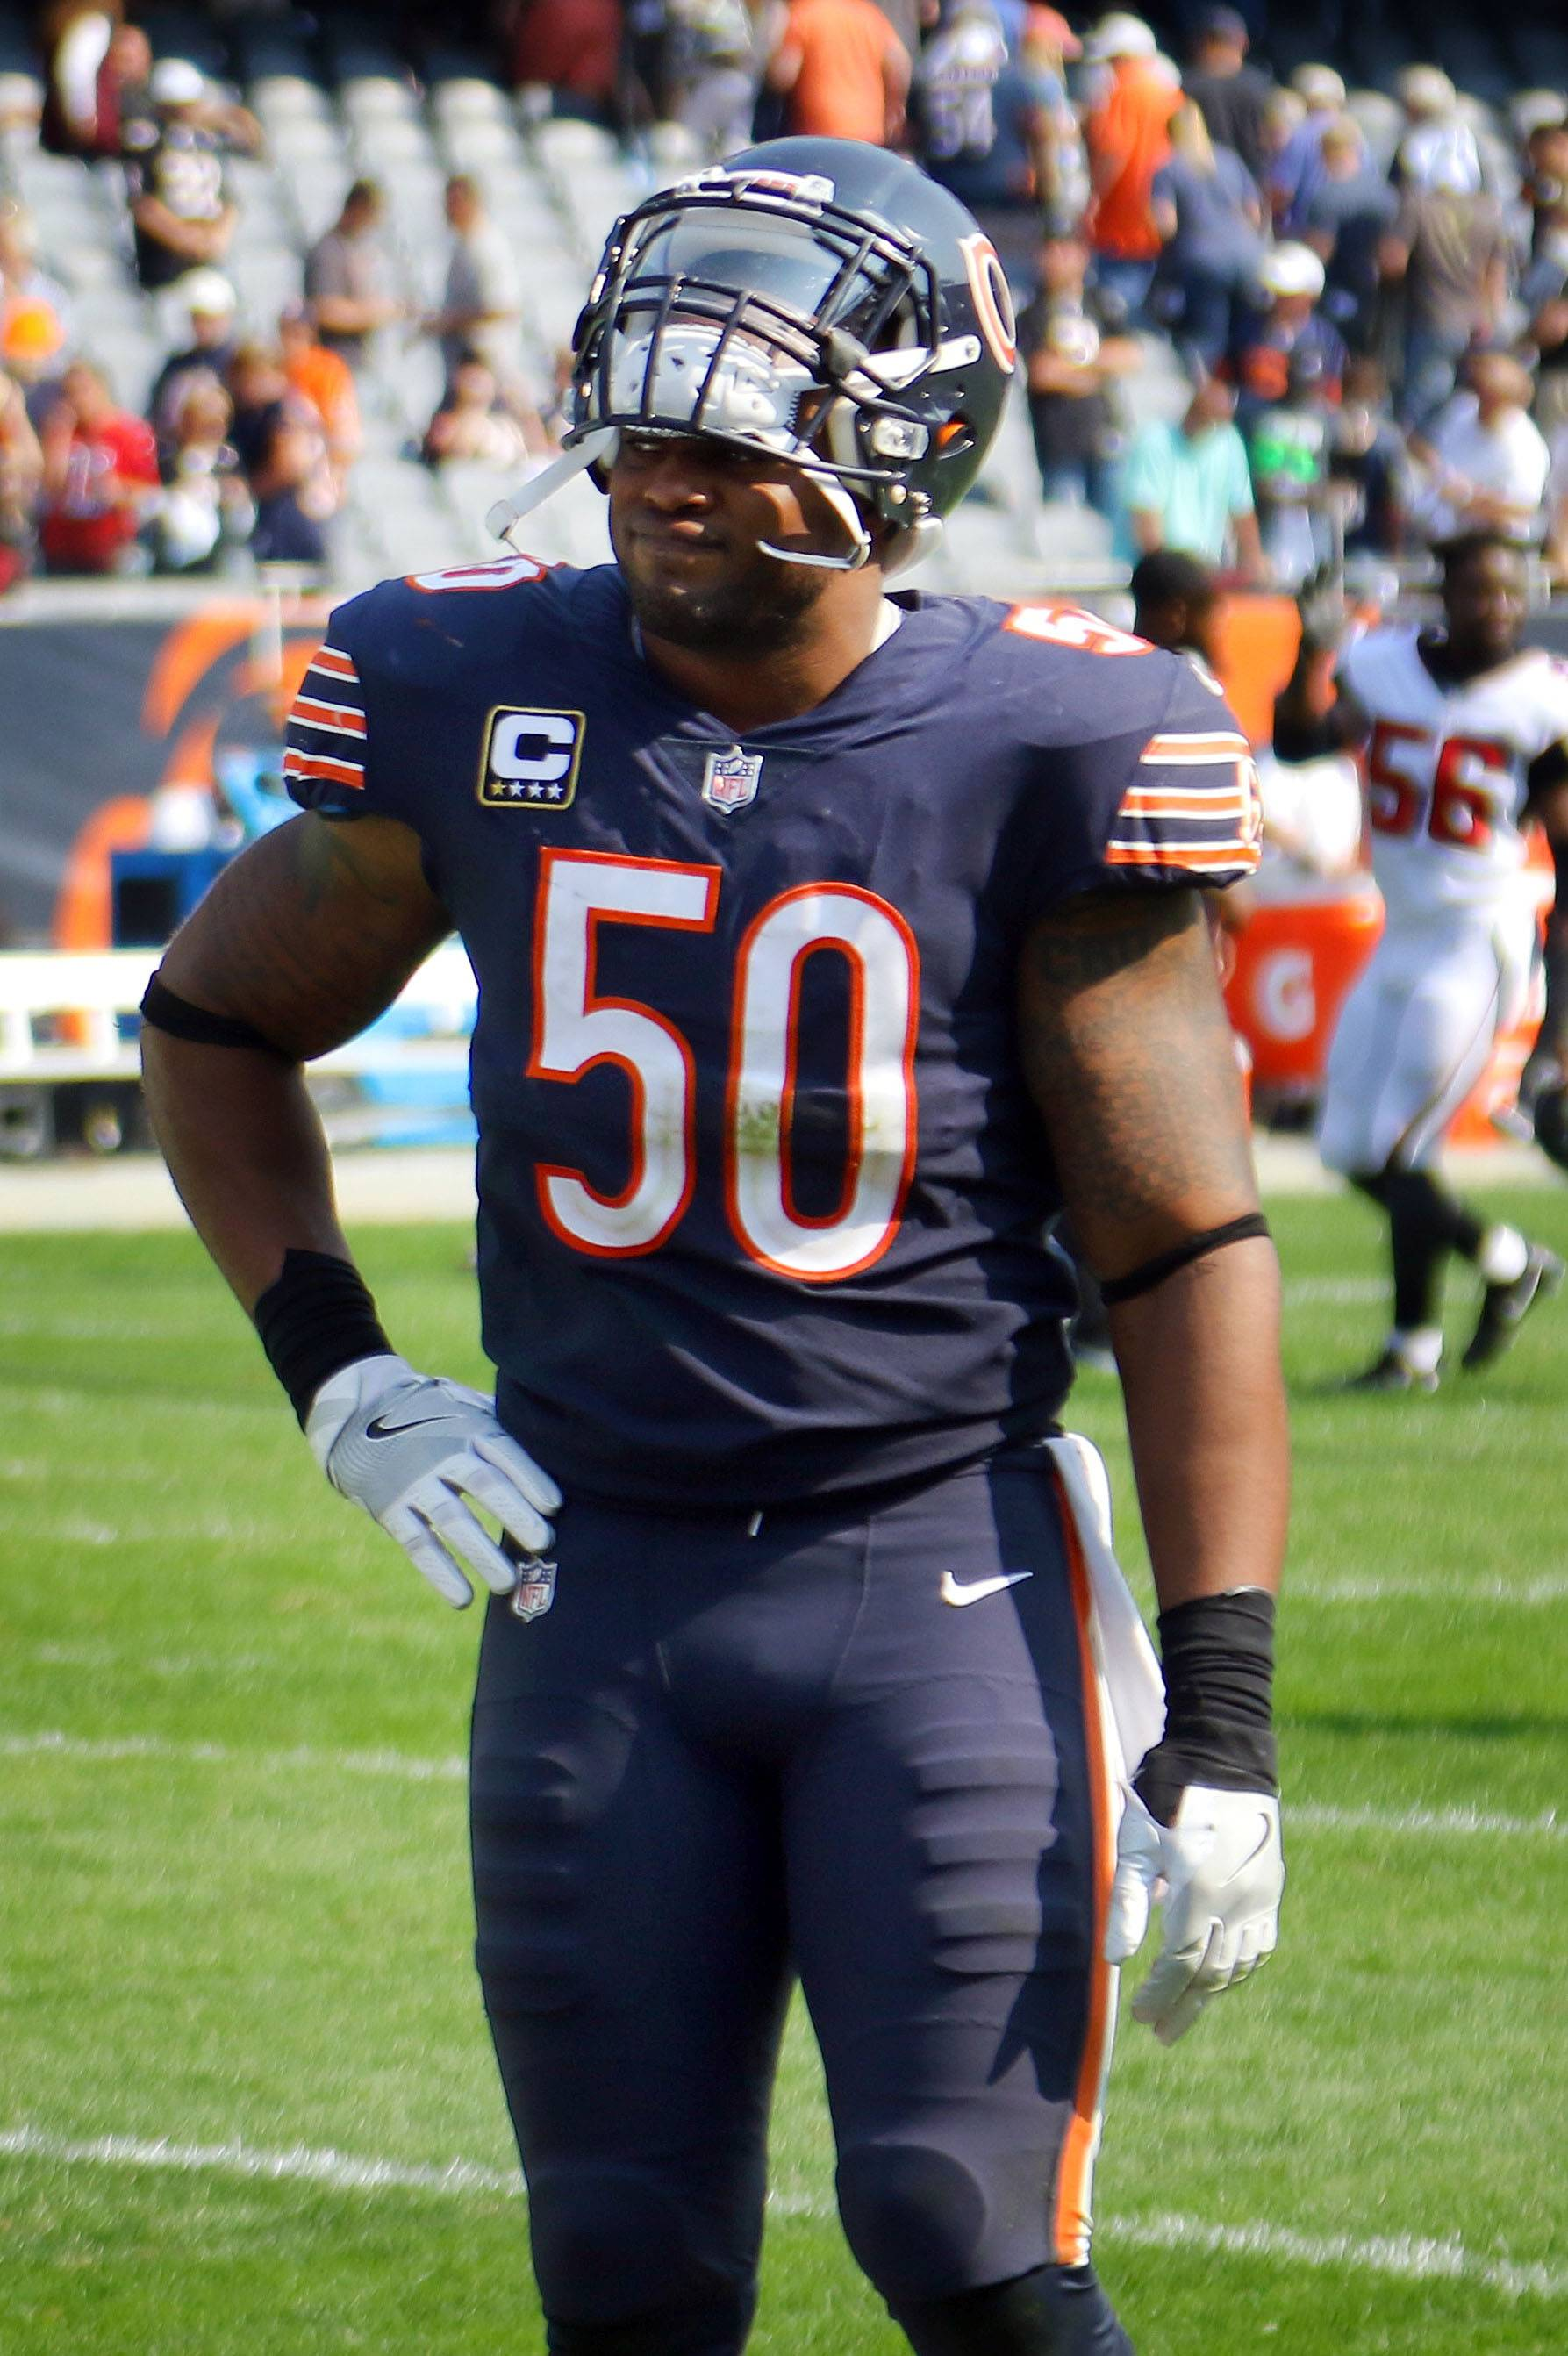 Chicago Bears having to make use of depth at linebacker